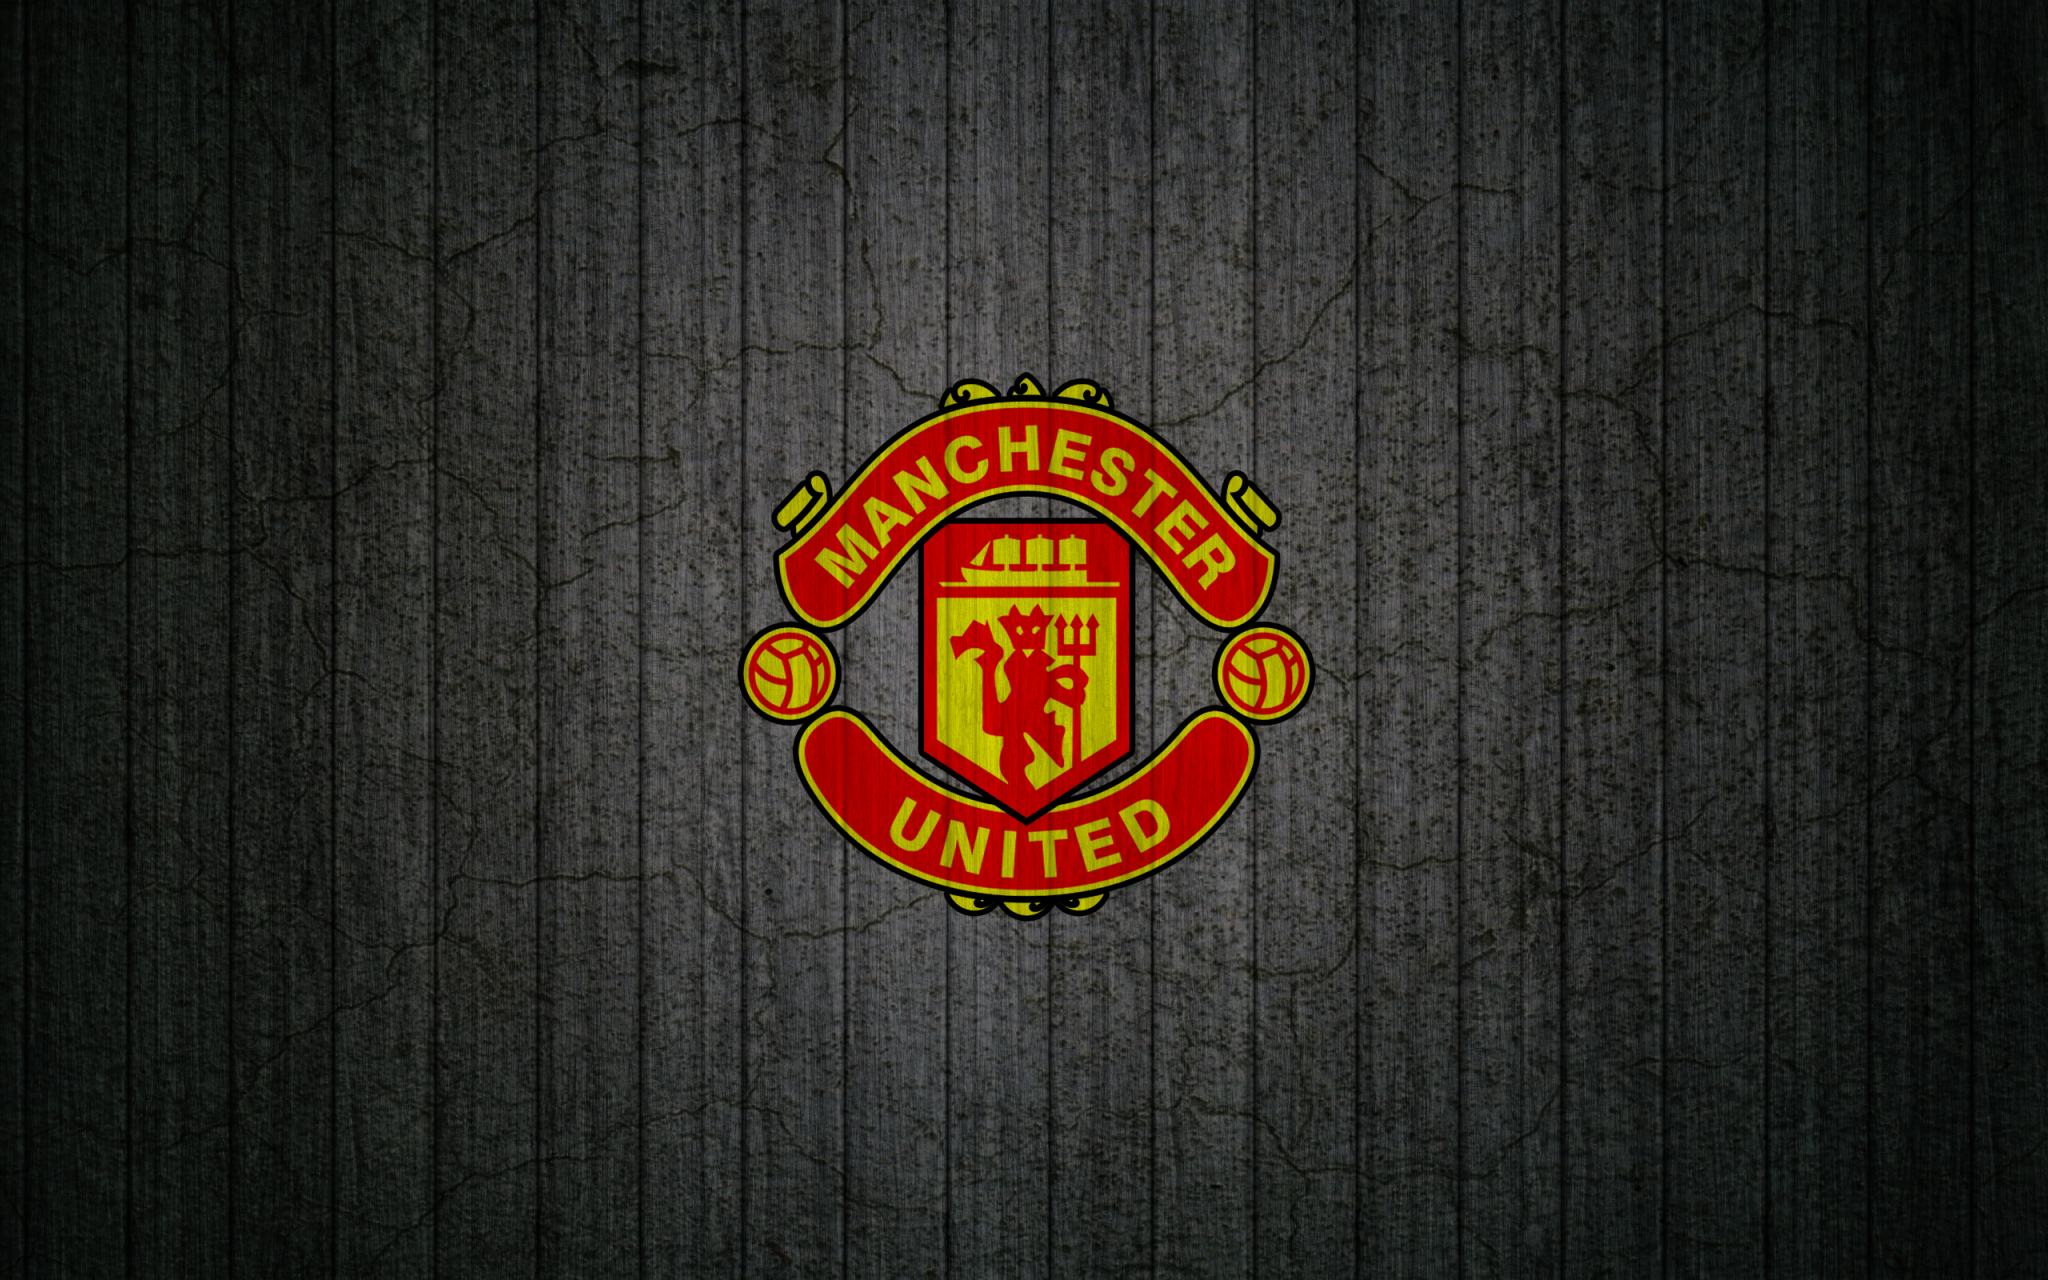 Manchester United Wallpaper Hd Backgrounds Images Manchester United Wallpaper Manchester United Logo Manchester United